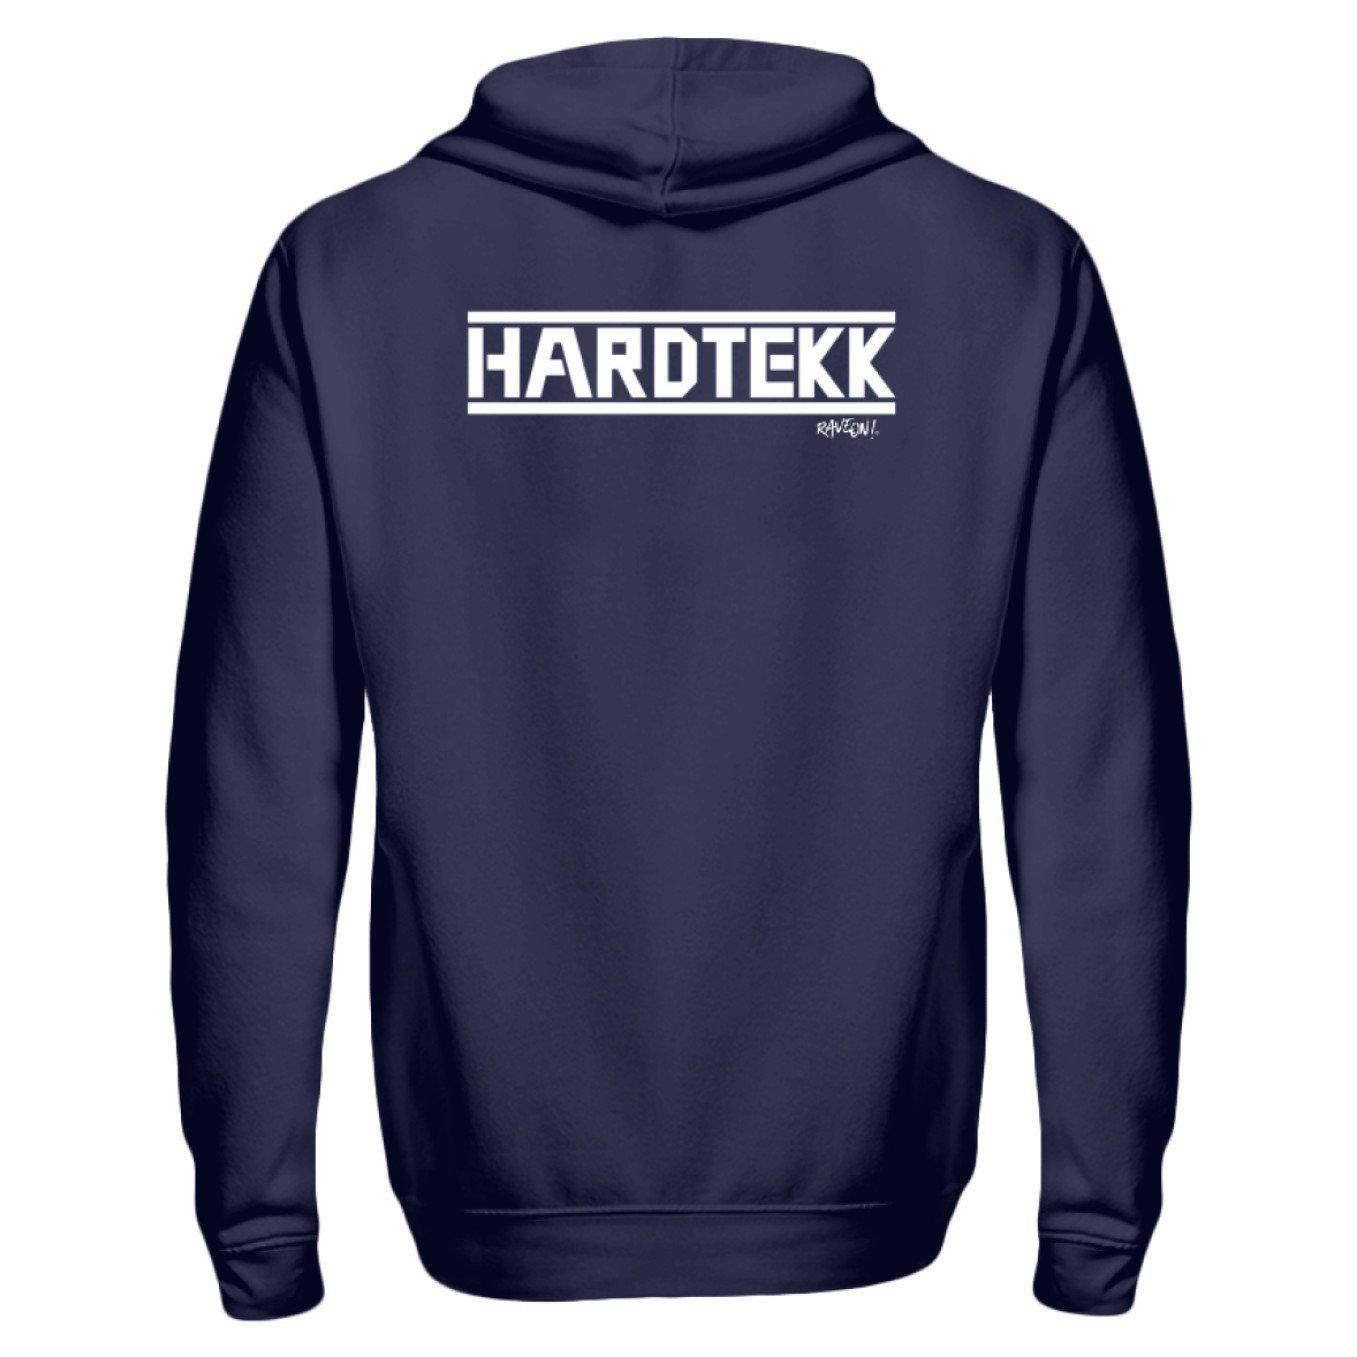 HARDTEKK - Rave On!® - Zip-Hoodie-ZipperB-Navy-S-Rave-On! I www.rave-on.shop I Deine Rave & Techno Szene Shop I boy hoodie, damen hoodie, Design - HARDTEKK - Rave On!®, girl hoodie, girls hoodie, hardtekk, herren hoodie, herren pullover, hoodie, hoodies, hoody, hoodys, kapuze, kapuzenpullover, on, pullover, pullover mit kapuze, rave, rave clothes, Rave Clothing, rave fashion, rave wear, techno, Tekk, tekkno, unisex, unisex hoodie, unisex hoody, unisex kapuzenpullover, unisex pulli, unisex pullov